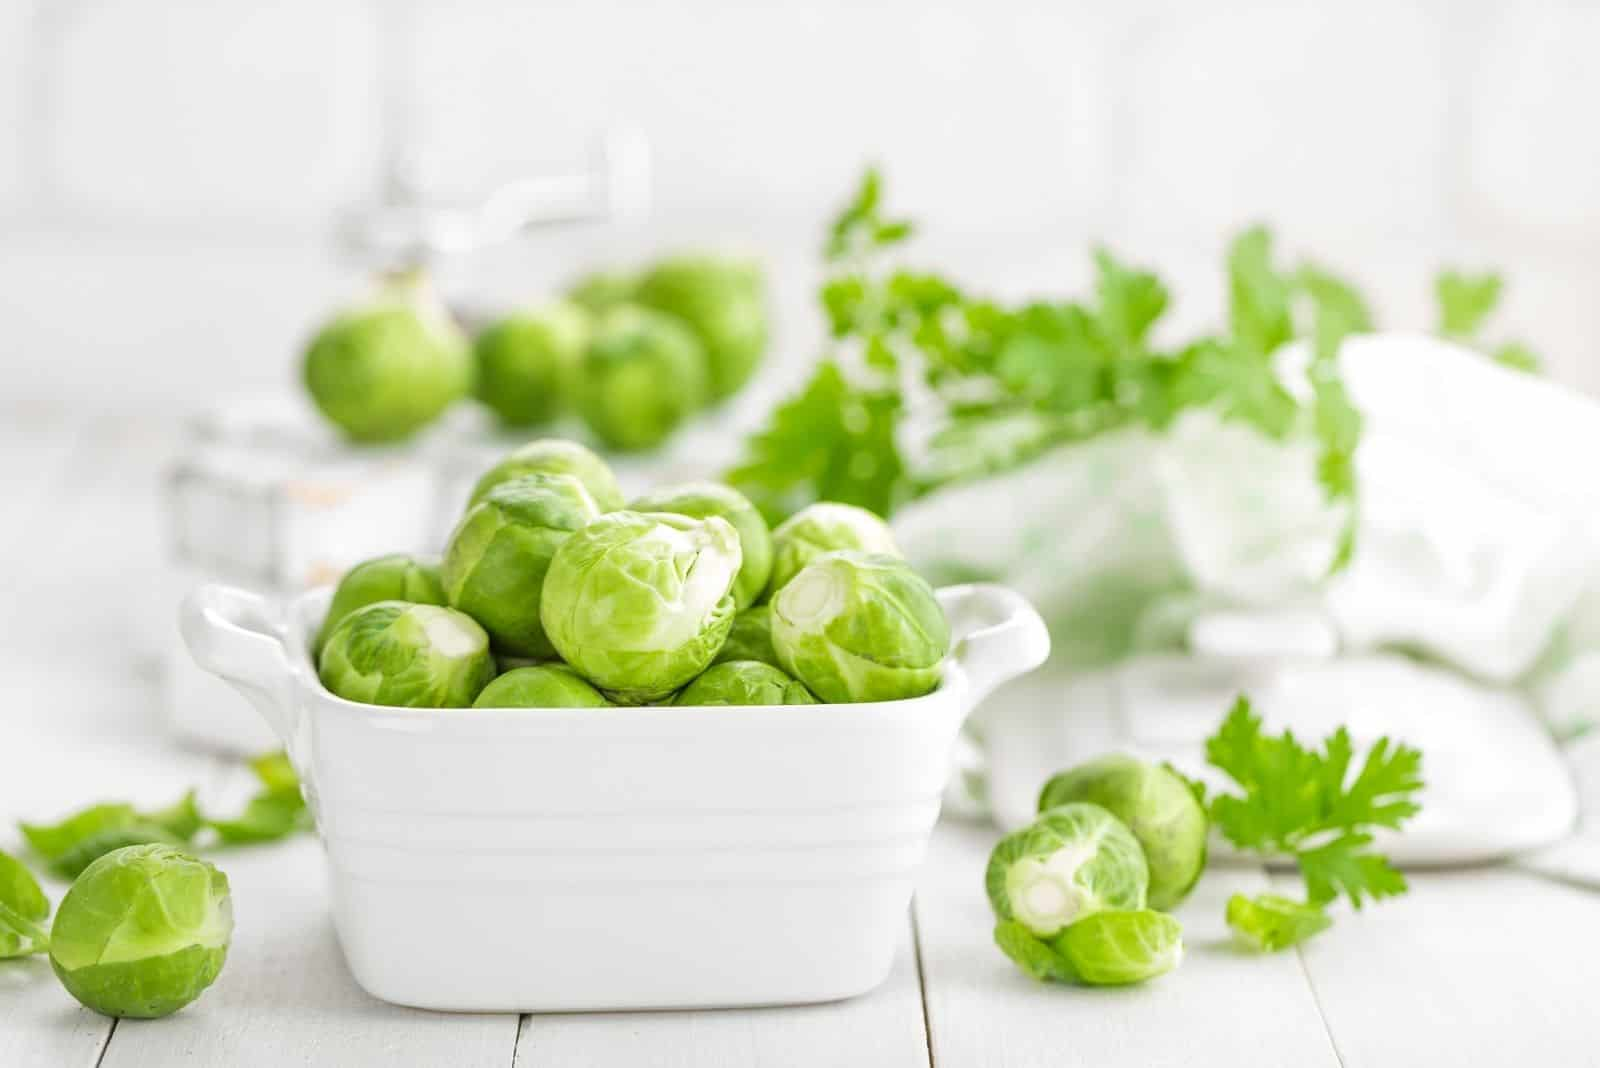 fresh brussel sprouts in a white square bowl